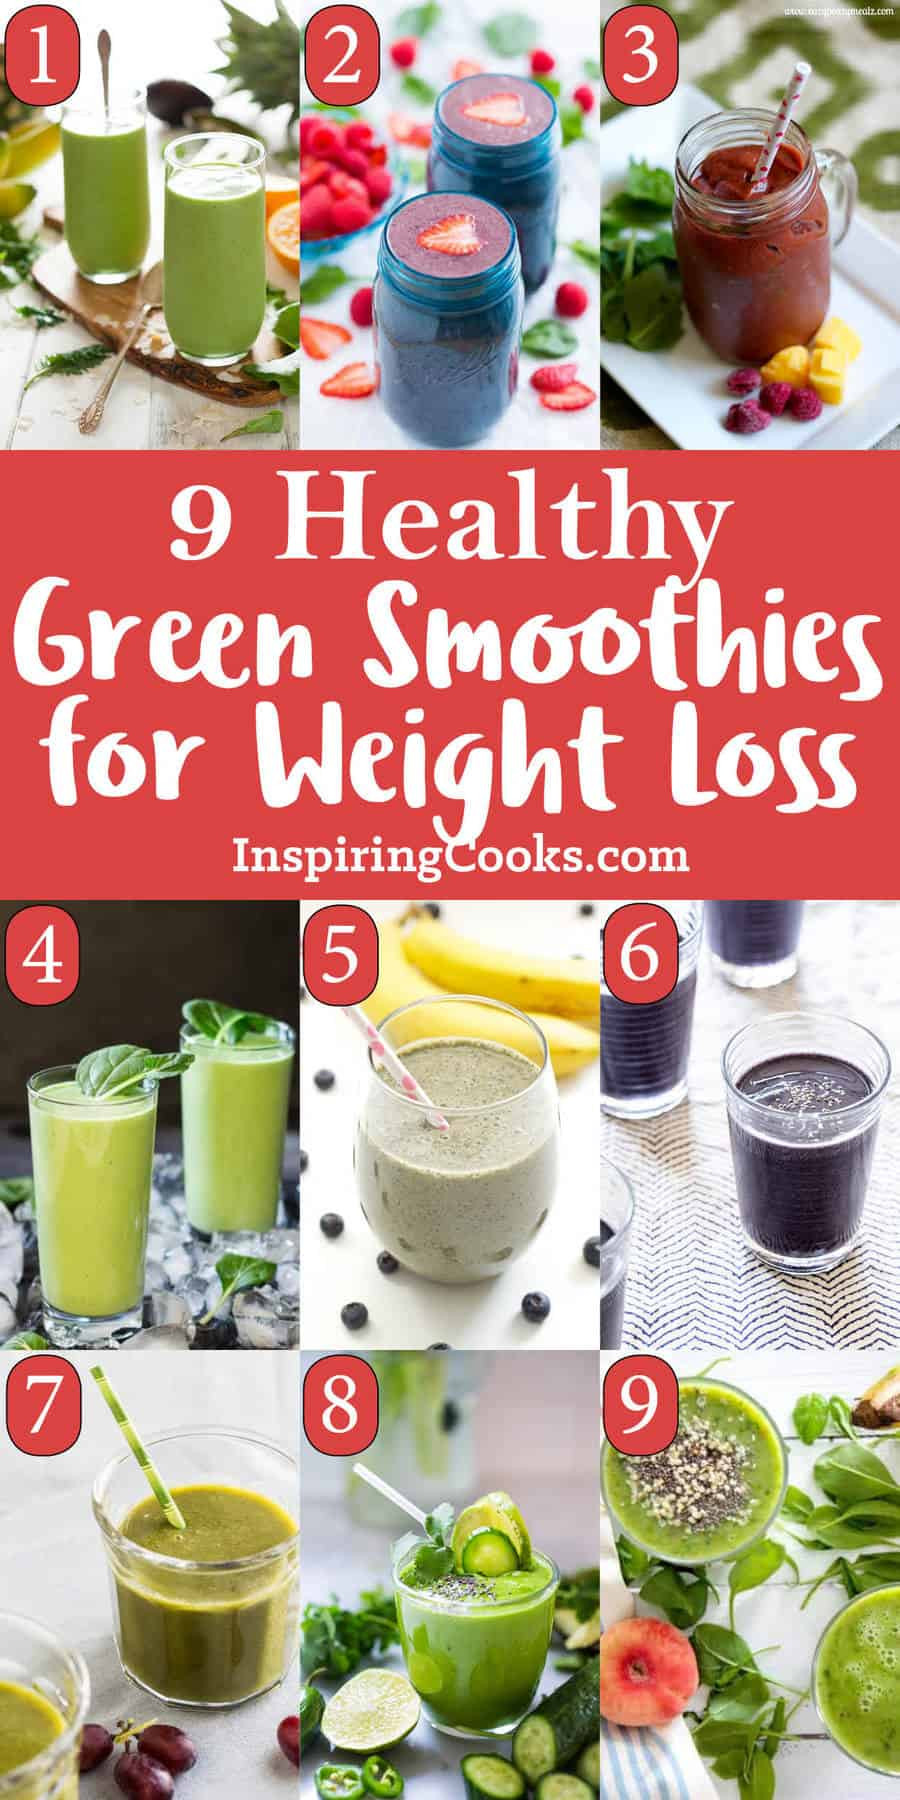 Healthy Green Smoothie Recipes For Weight Loss  The Best 9 Healthy Green Smoothies for Weight Loss